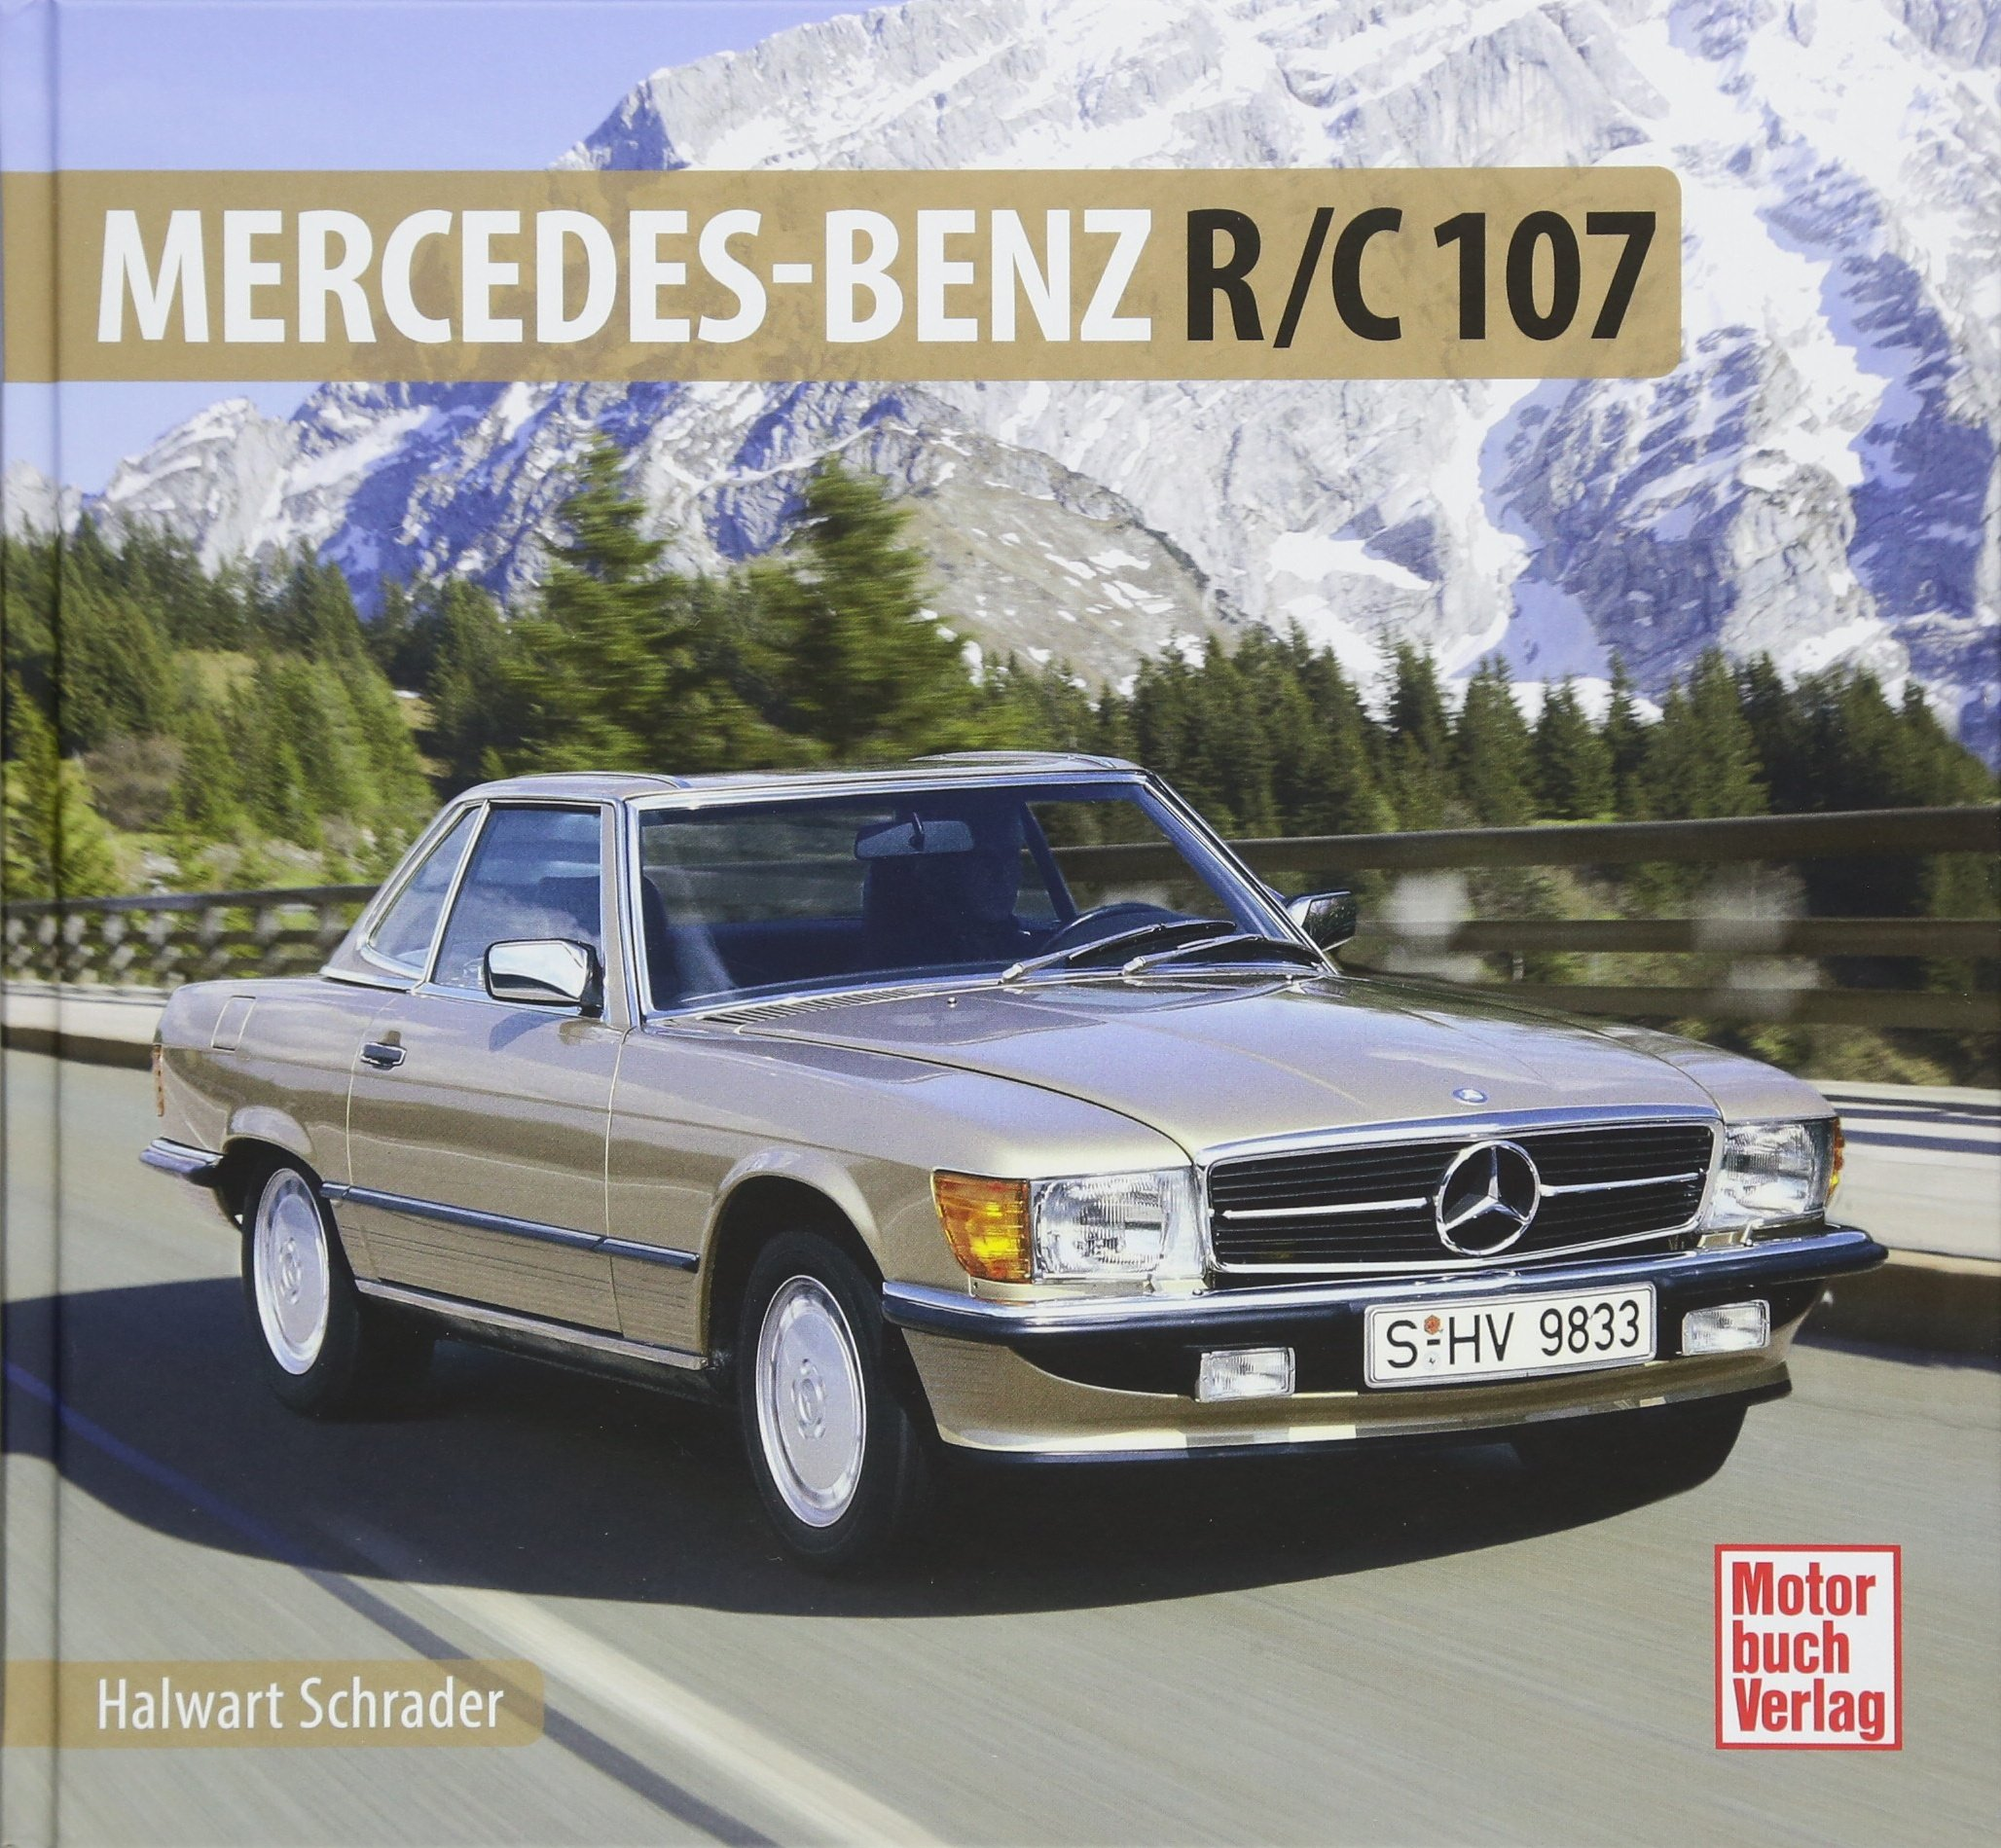 Mercedes-Benz R/C 107 (Schrader-Typen-Chronik)